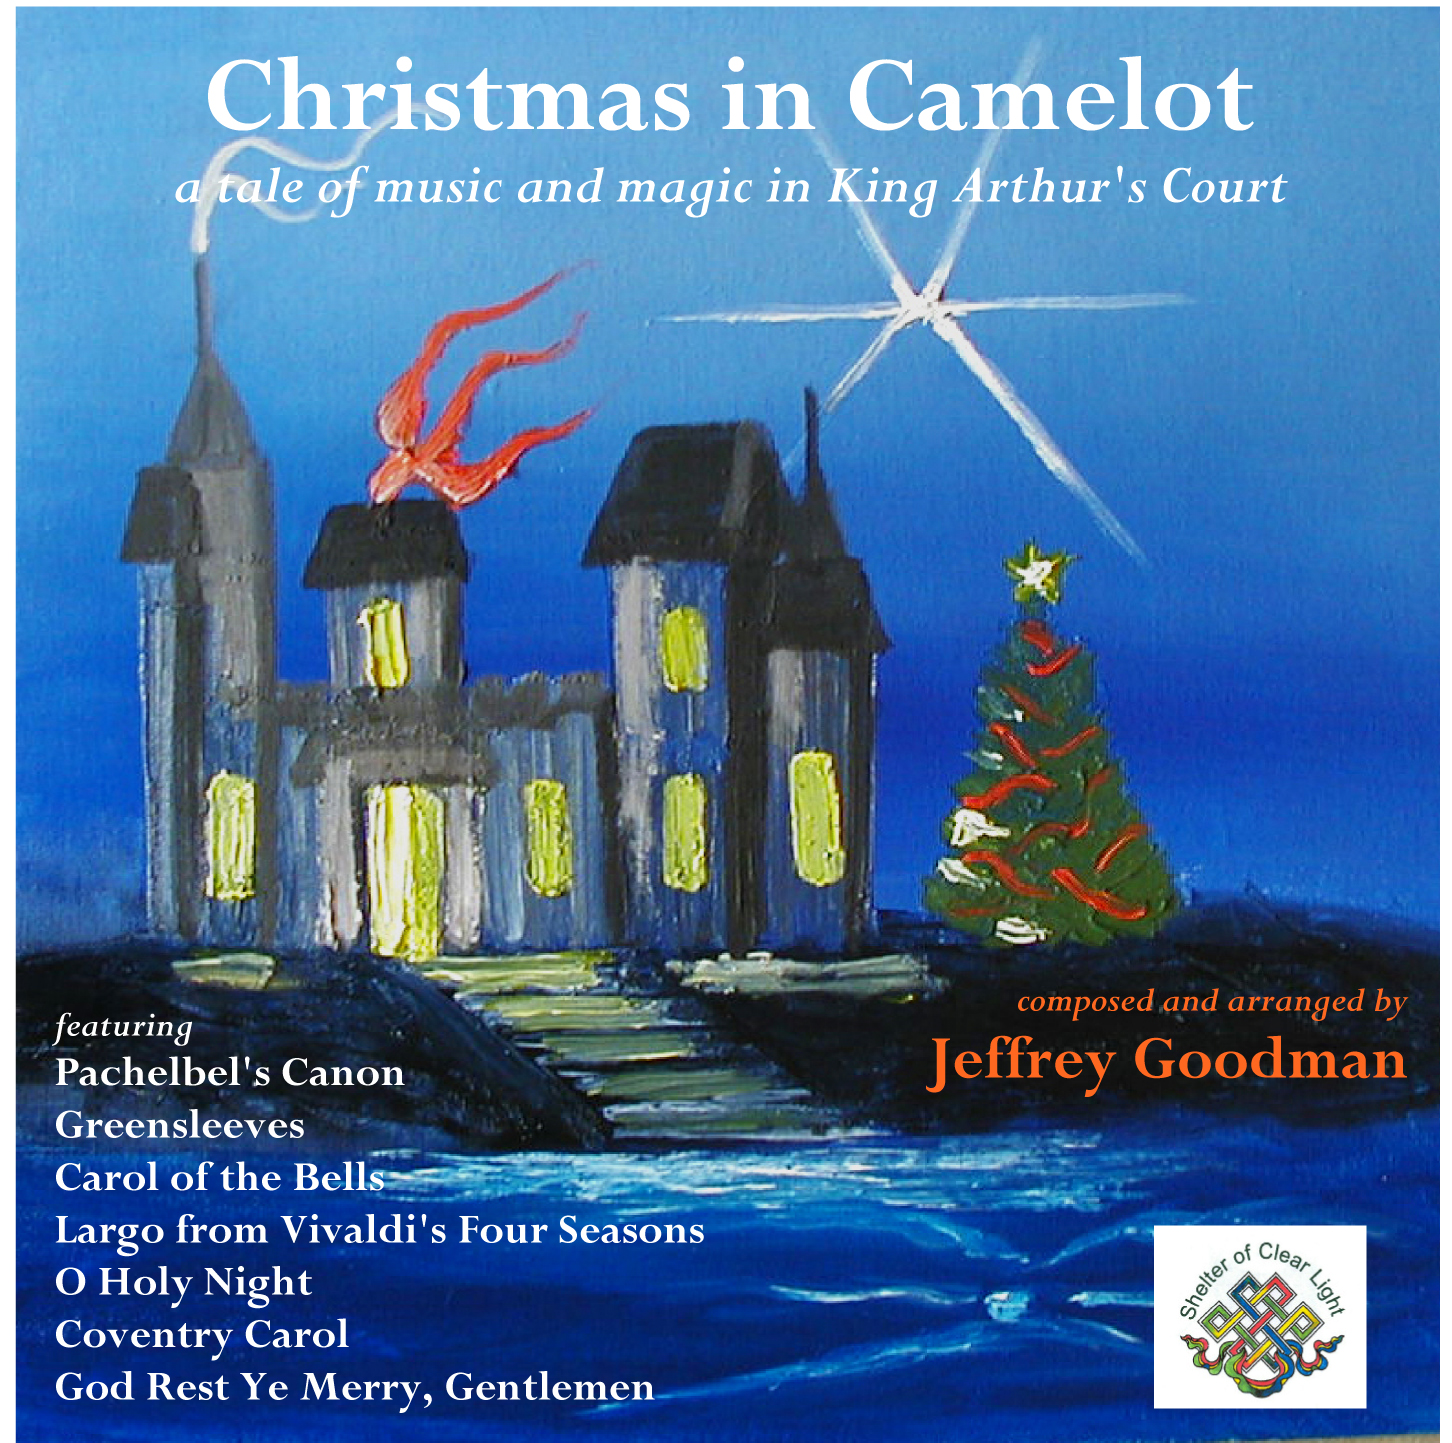 Christmas in Camelot front cover art.jpg